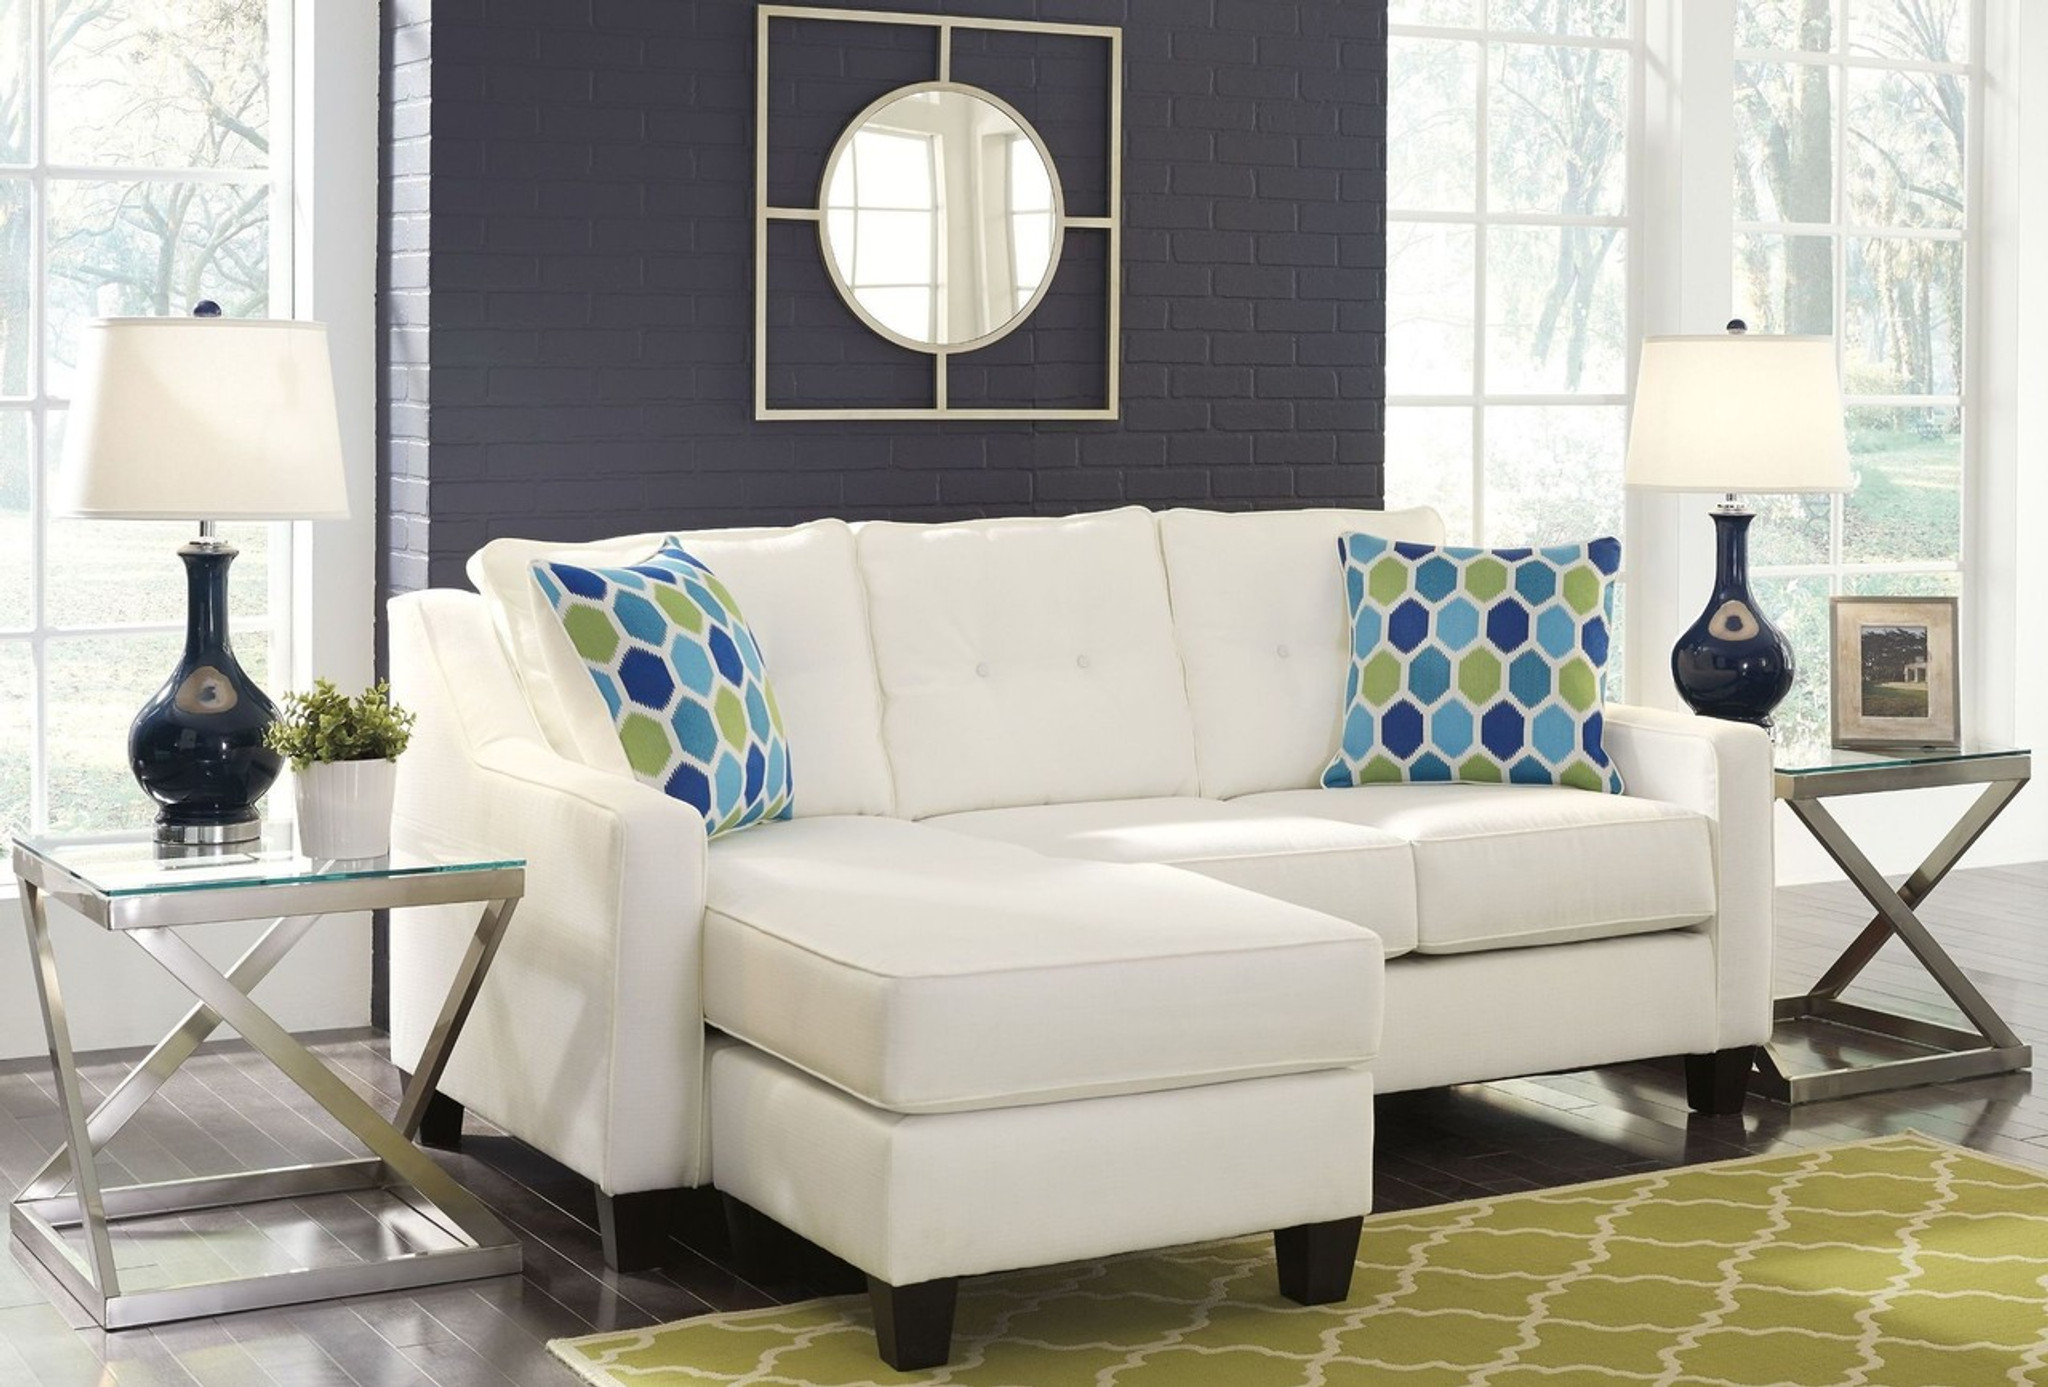 Pleasing Aldie Nuvella White Collection Queen Sofa Chaise Sleeper Home Interior And Landscaping Ologienasavecom